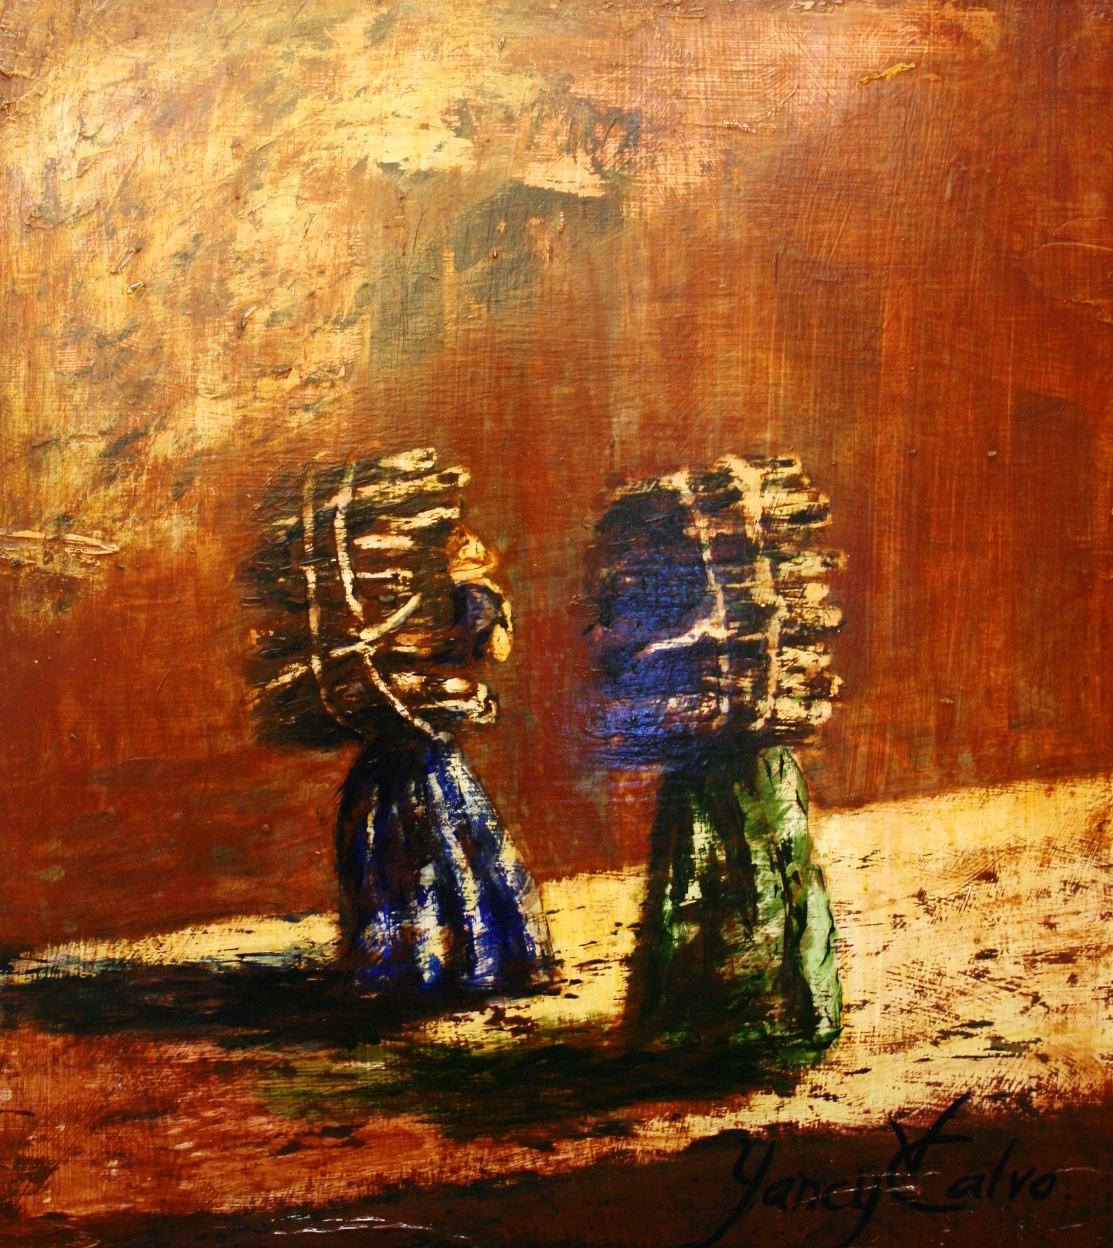 Juntas (Together)-Yancy Villa-Calvo.jpg